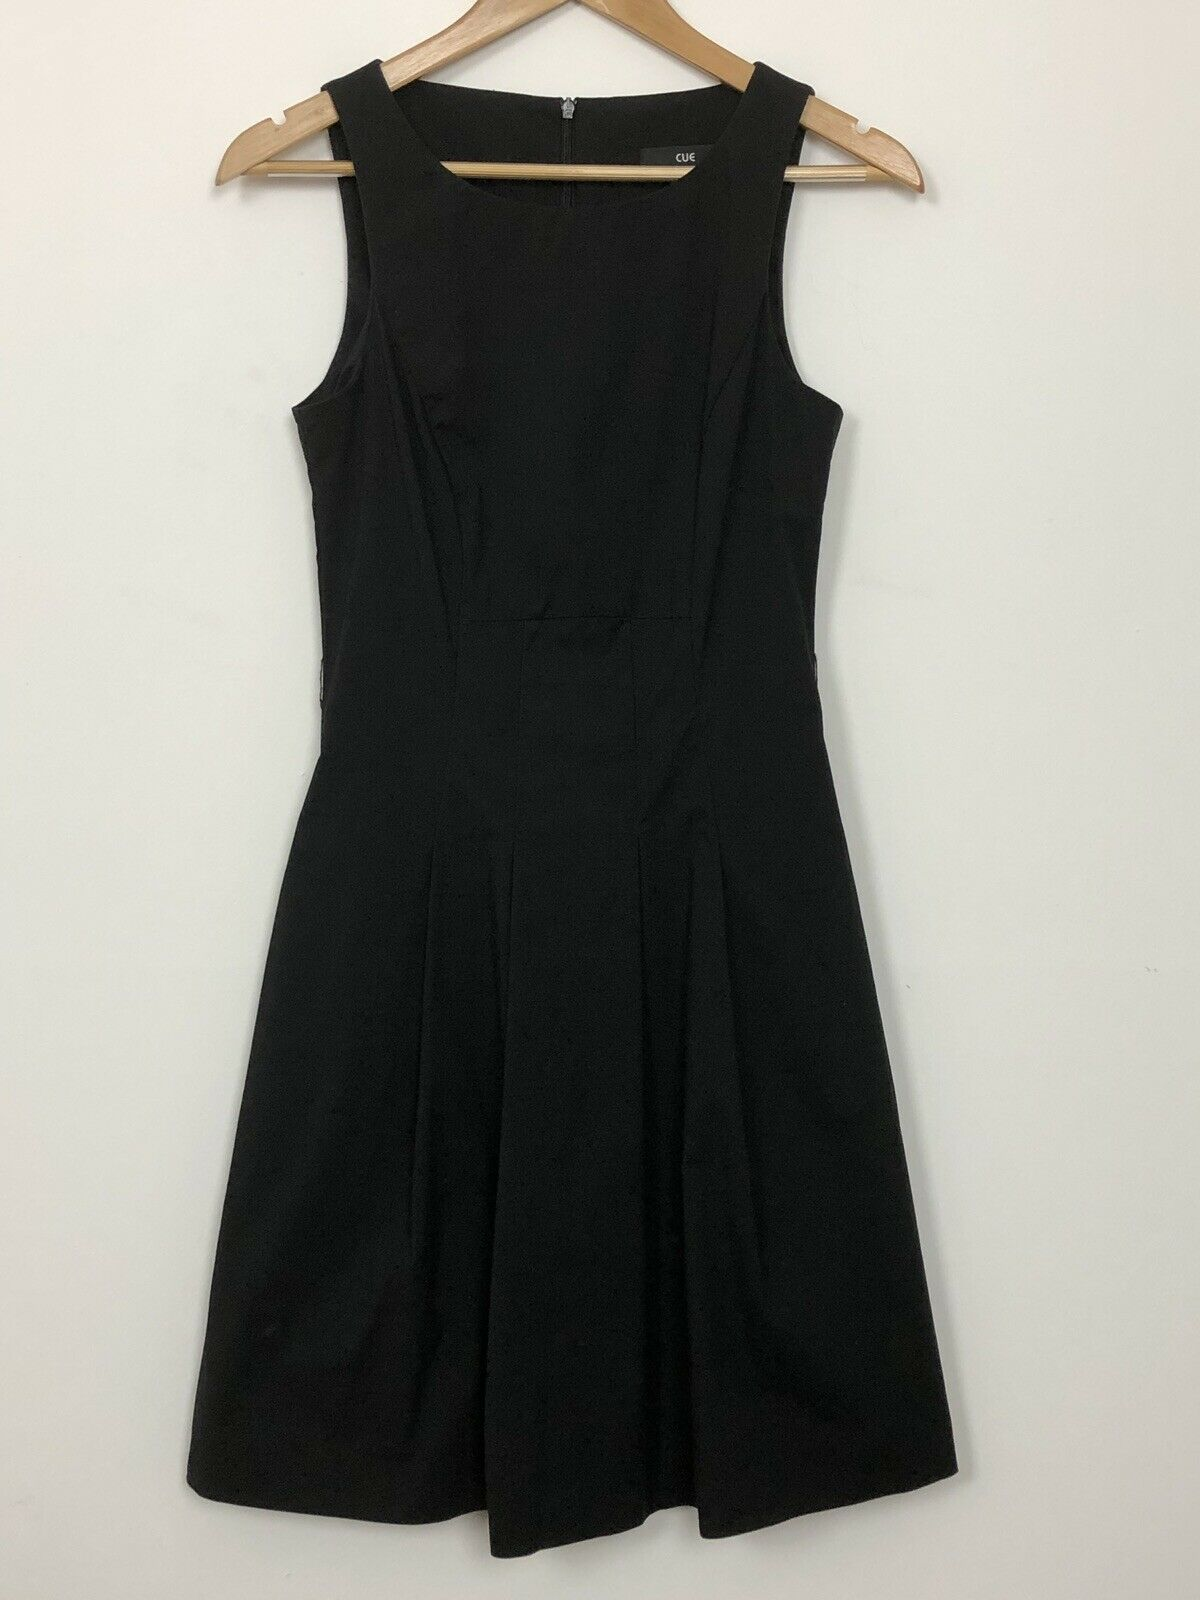 CUE damen schwarz Sleeveless A-Line Pleated Light Weight Workwear Dress Größe 6